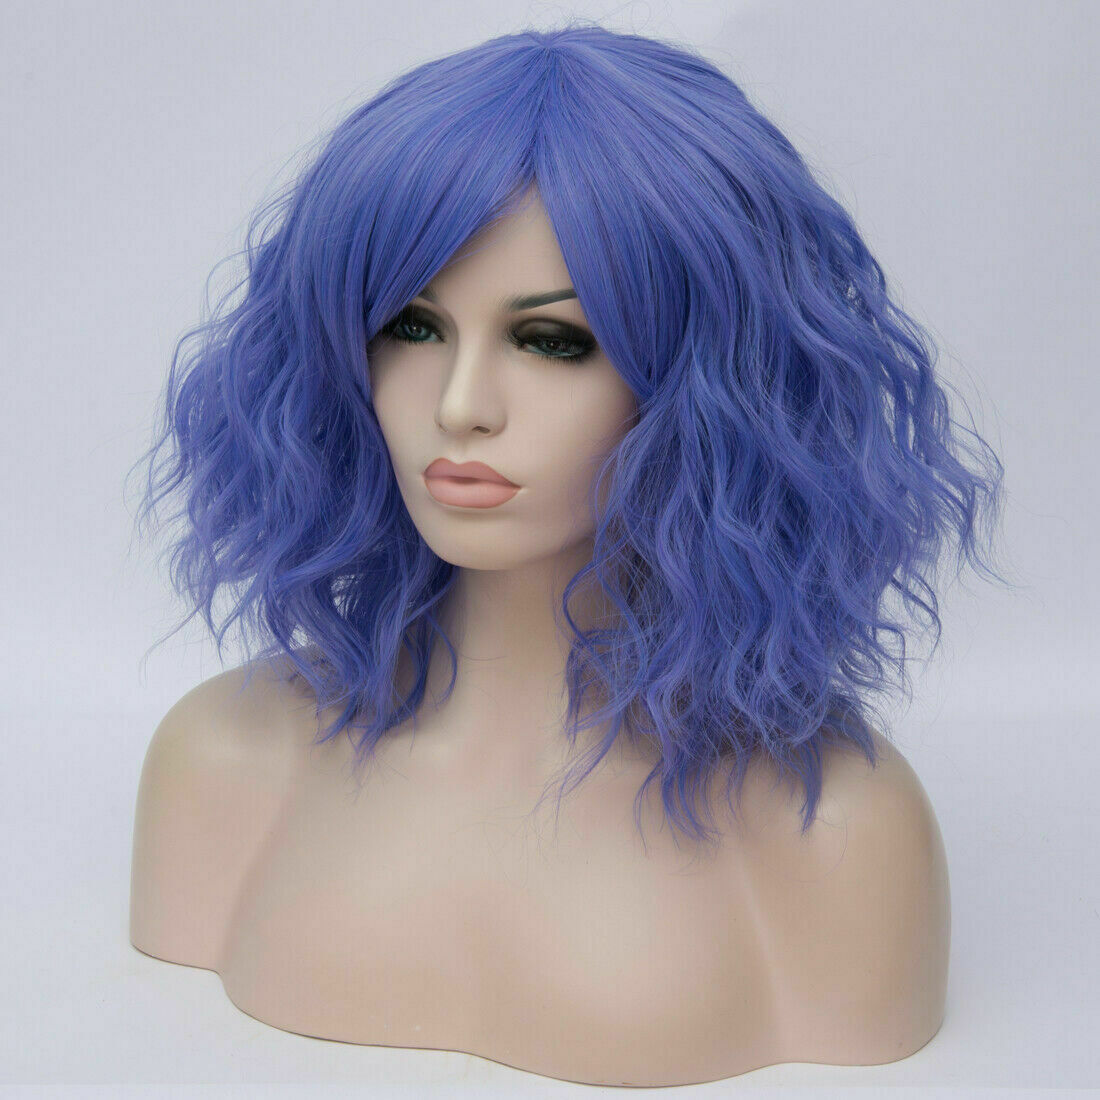 Lolita-Women-039-s-Short-Curly-Anime-Synthetic-Hair-Heat-Resistant-Cosplay-Party-Wig miniature 76